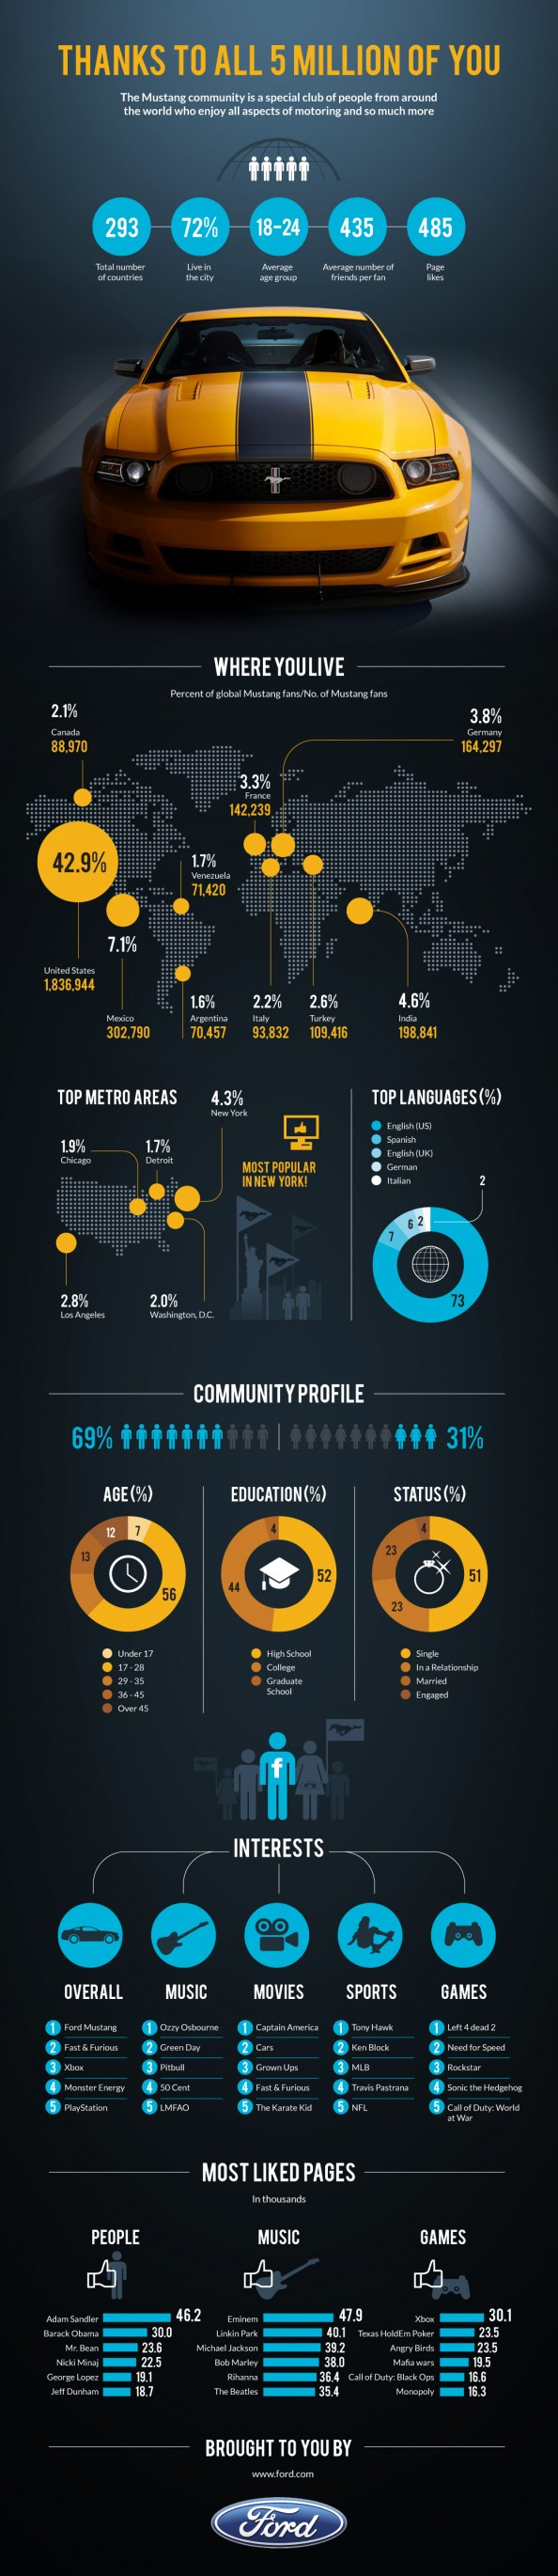 Ford Mustang - 5 Million Facebook Fans Infographic